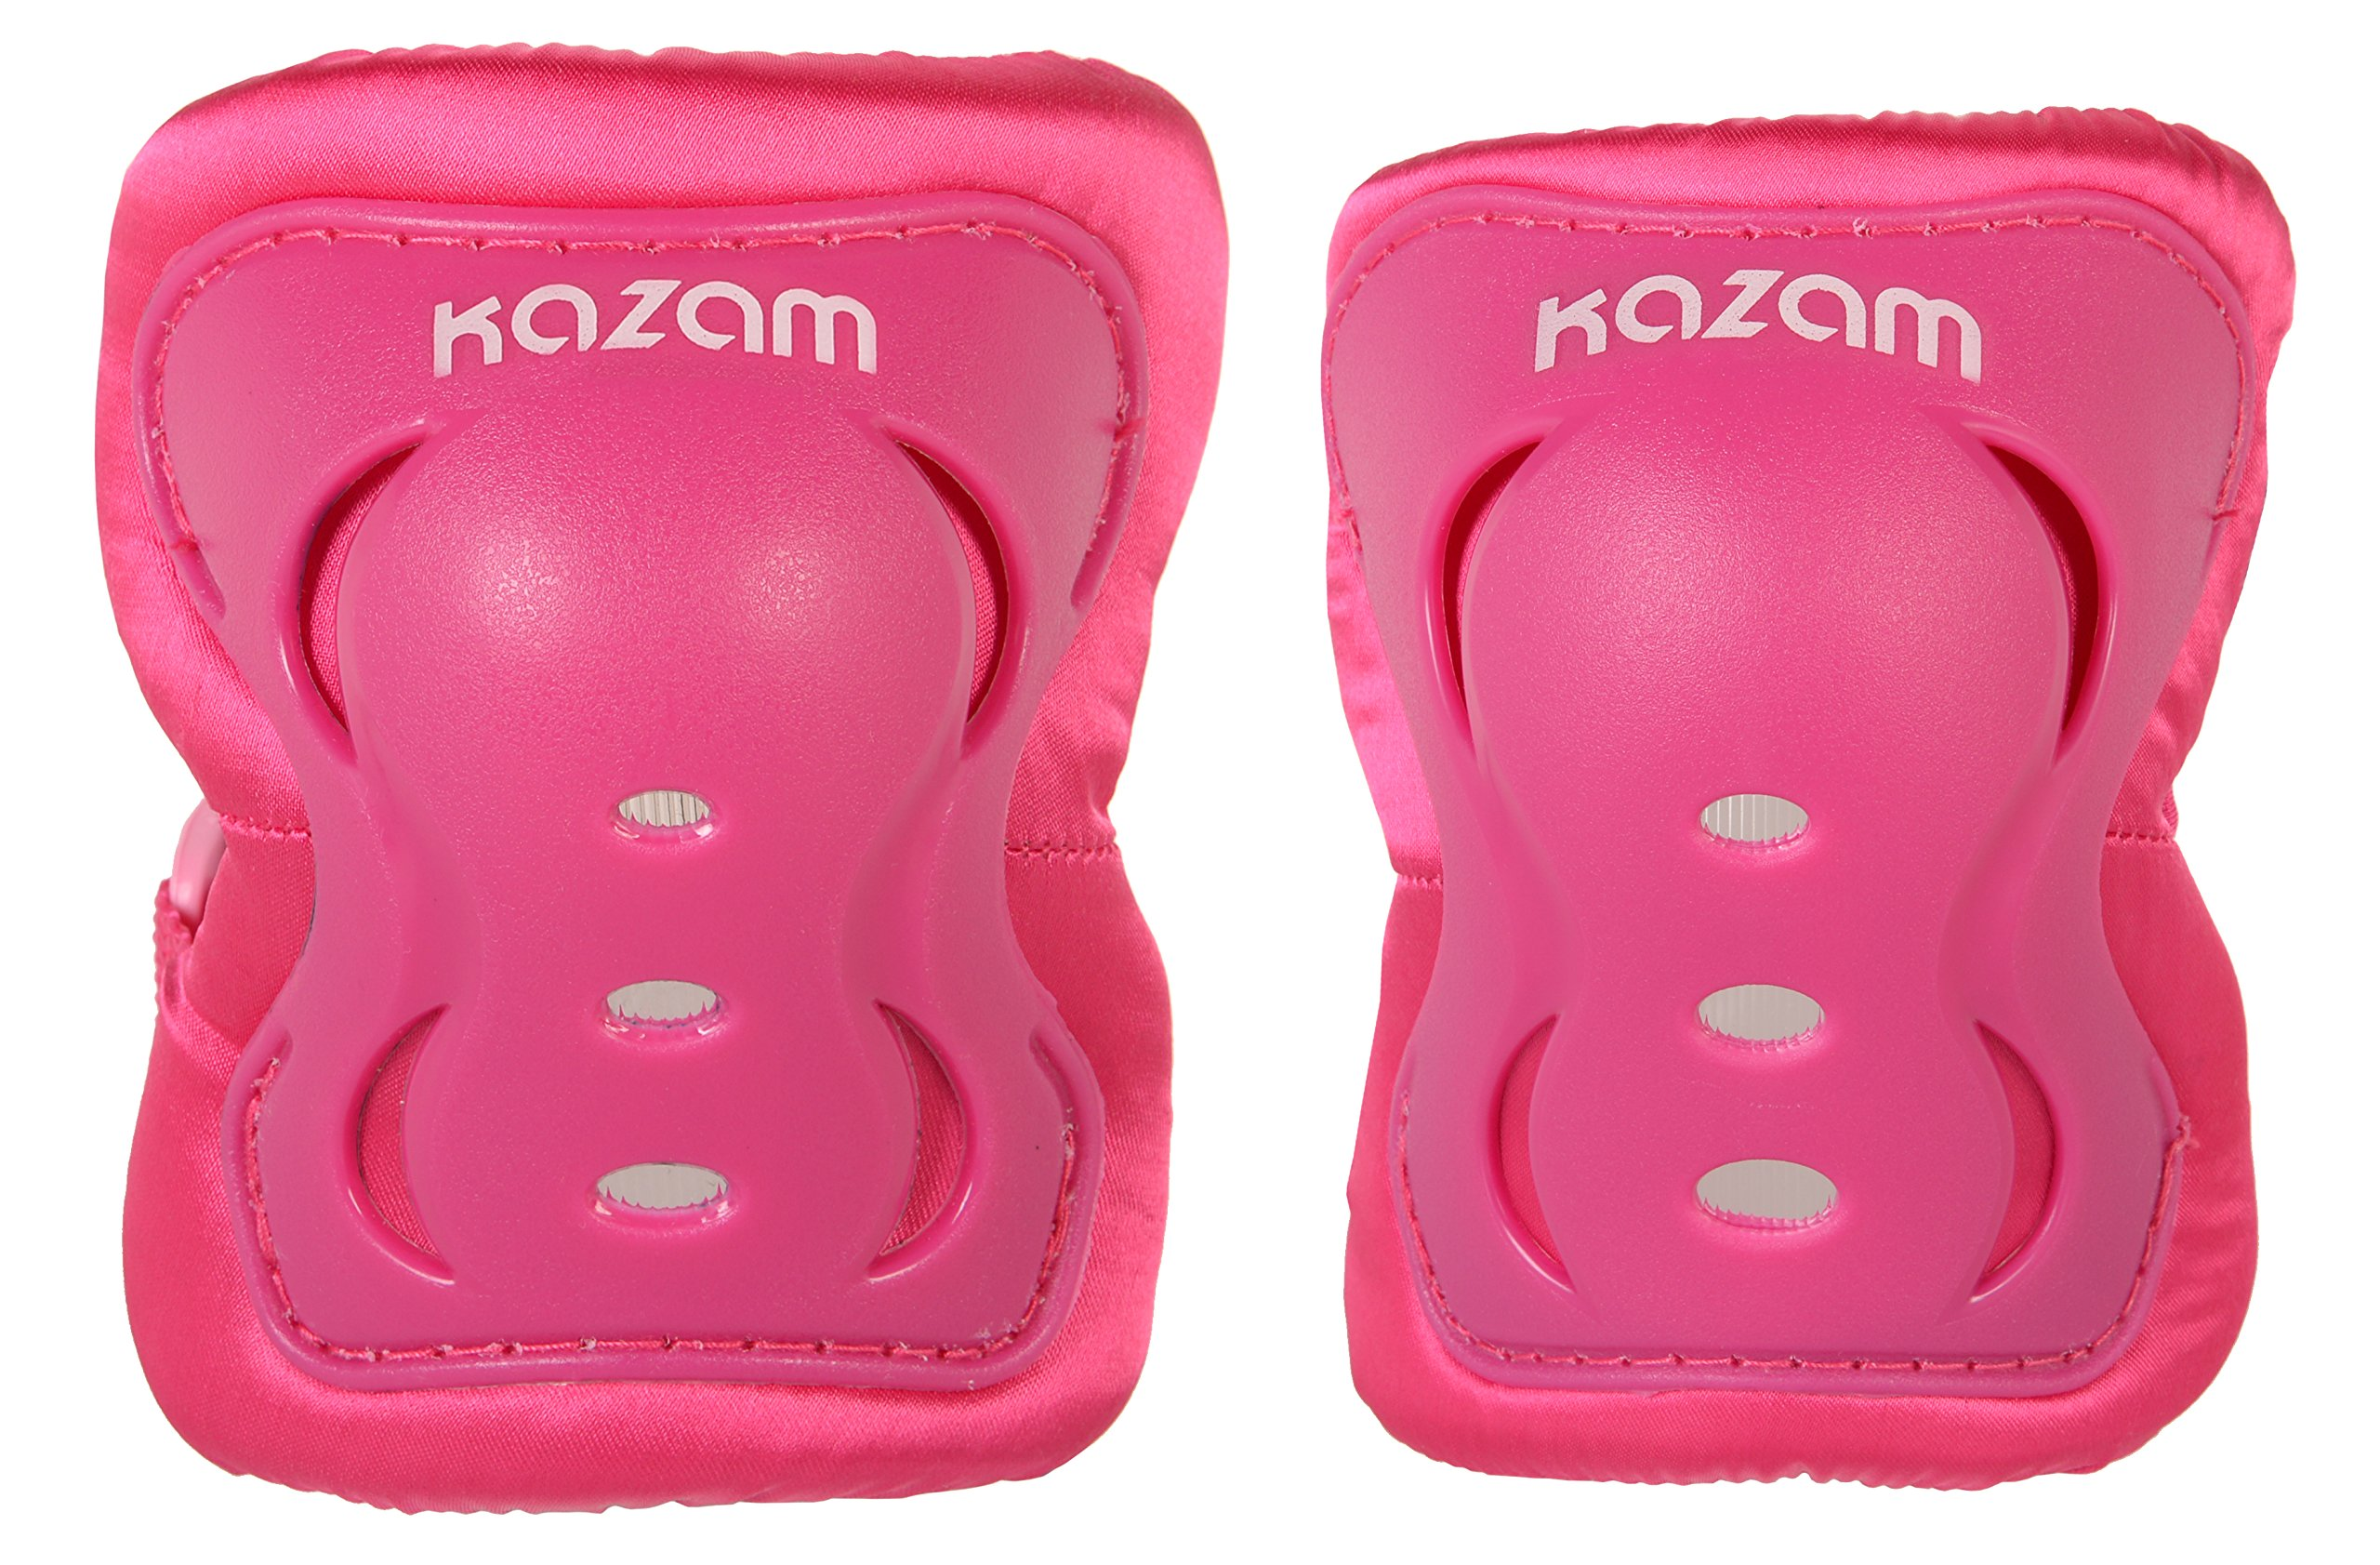 KaZAM Girls Multi-Sport Knee and Elbow Pad Set, Pink